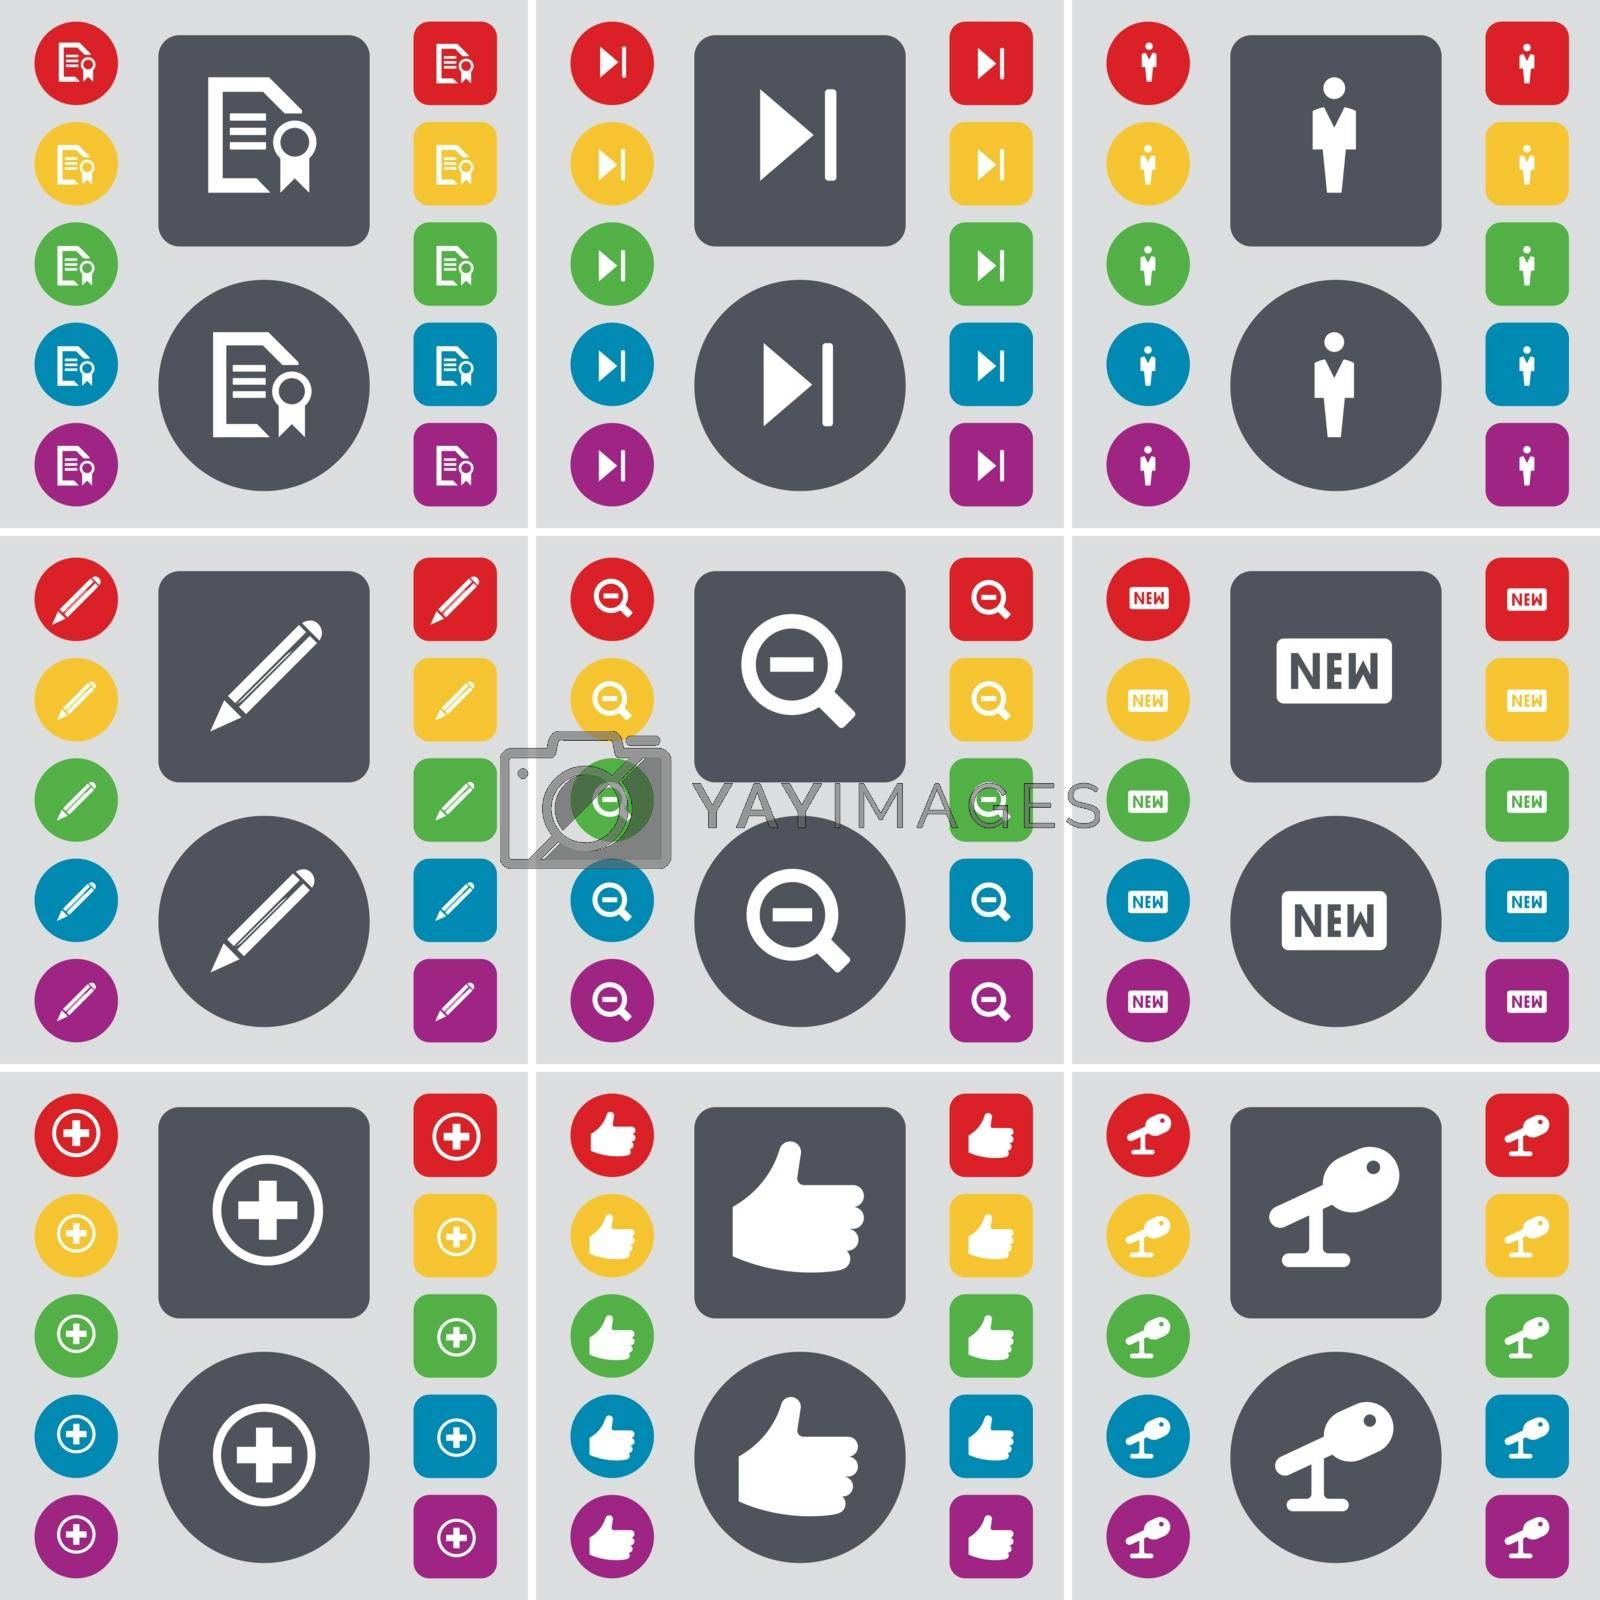 Royalty free image of Text file, Media skip, Silhouette, Pencil, Magnifying glass, New, Plus, Like, Microphone icon symbol. A large set of flat, colored buttons for your design. Vector by serhii_lohvyniuk